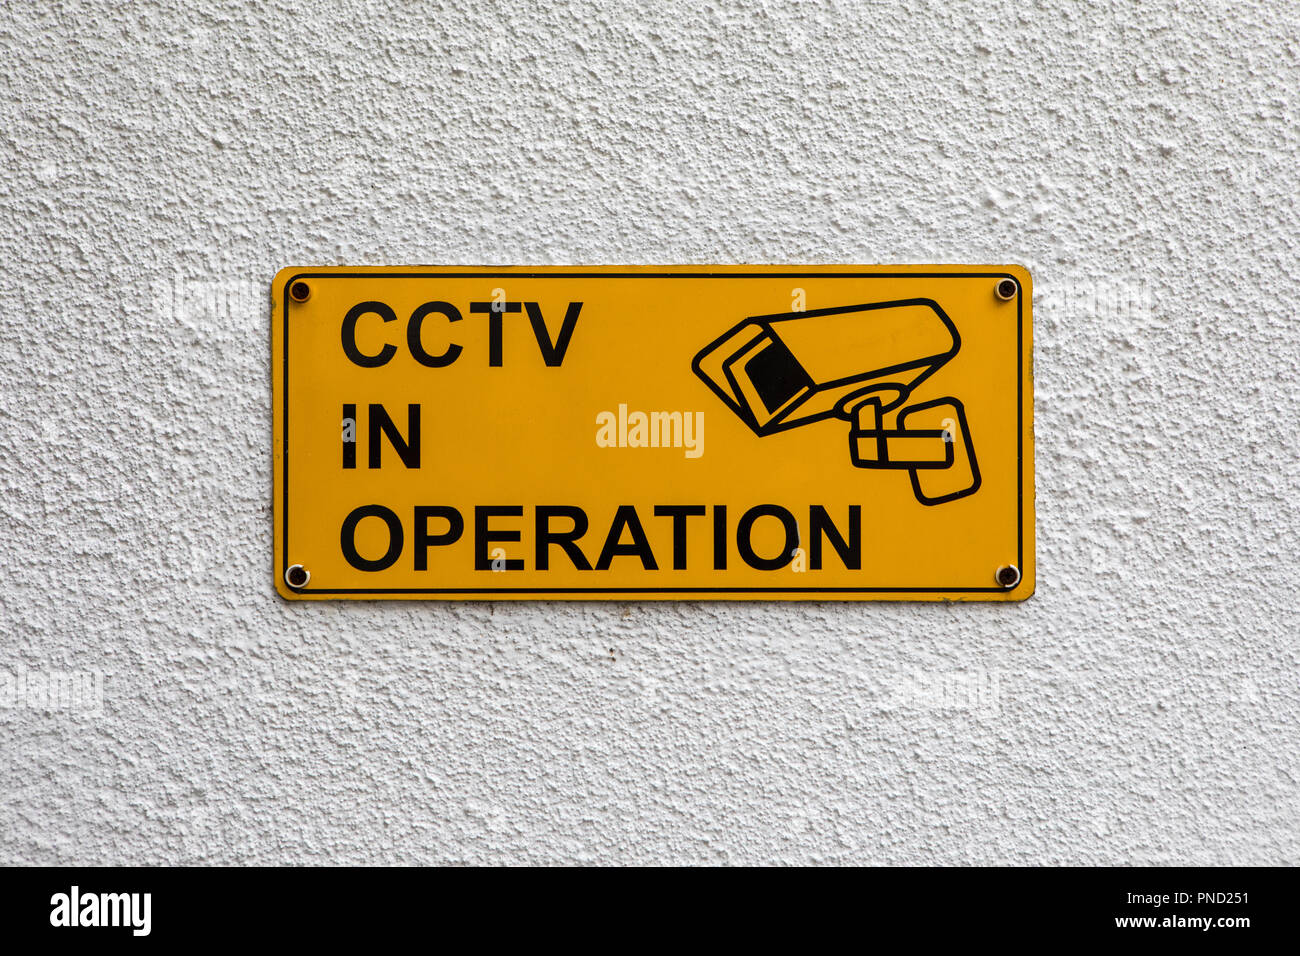 A sign cautioning passersby that CCTV is in operation. - Stock Image